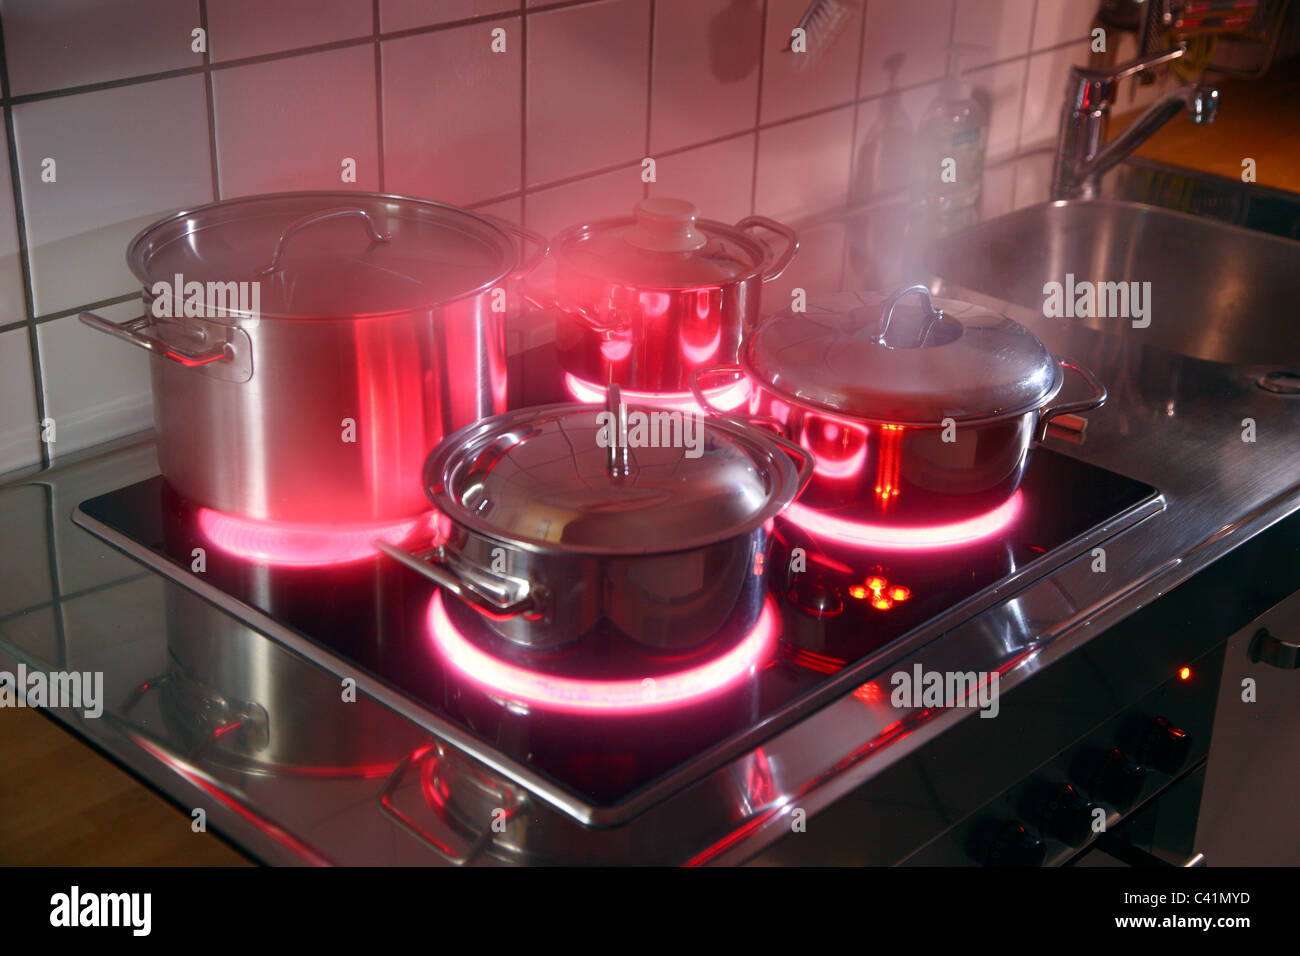 home kitchen, cooking pots, made of stainless steel, on a hot glass-ceramic cooking ring. red, hot glowing. - Stock Image